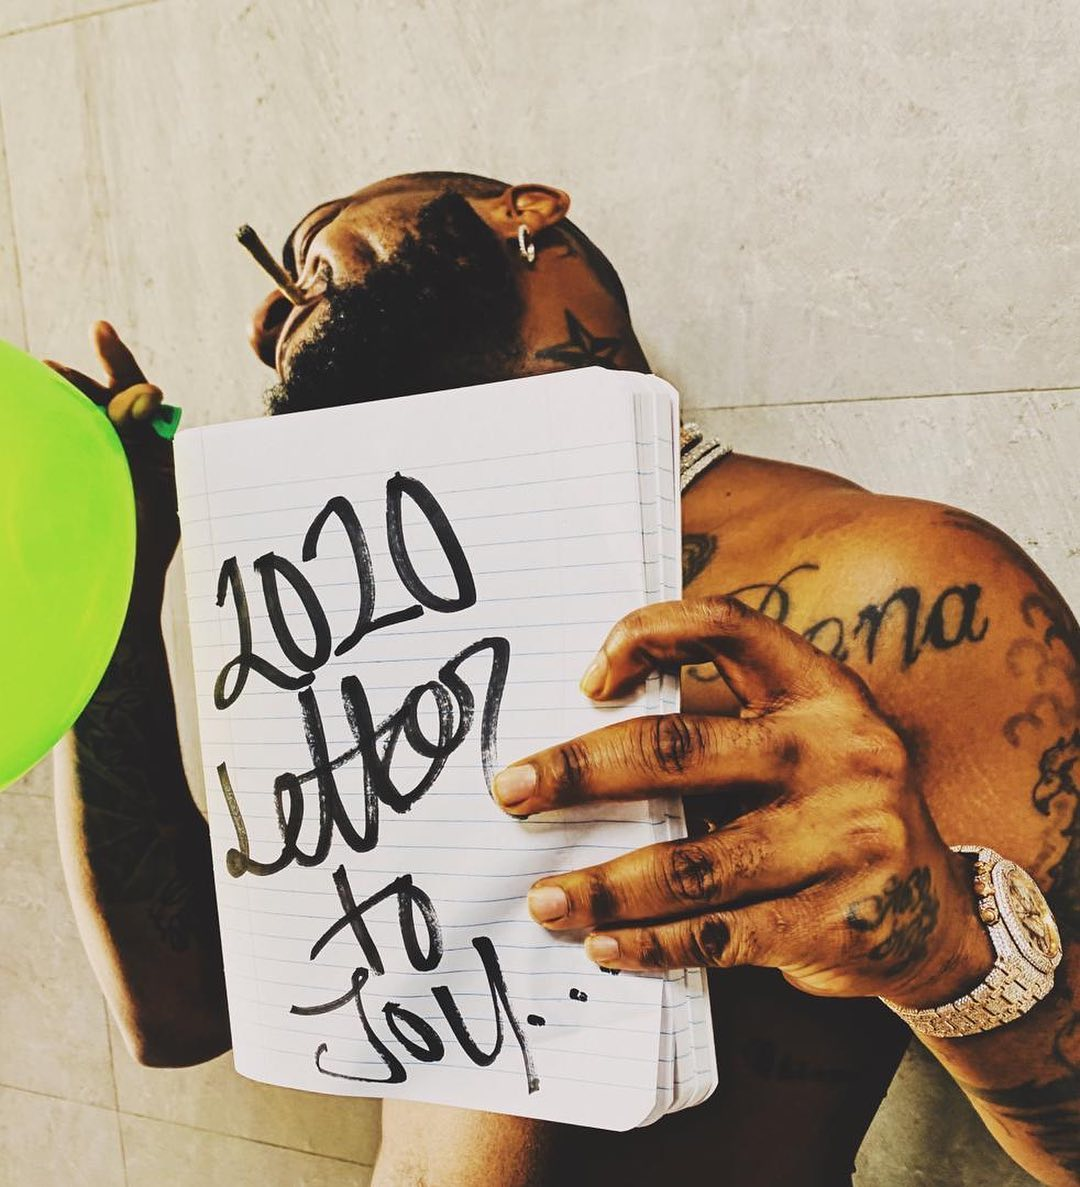 Davido - 2020 Letter To You (Prod. By Vstix)